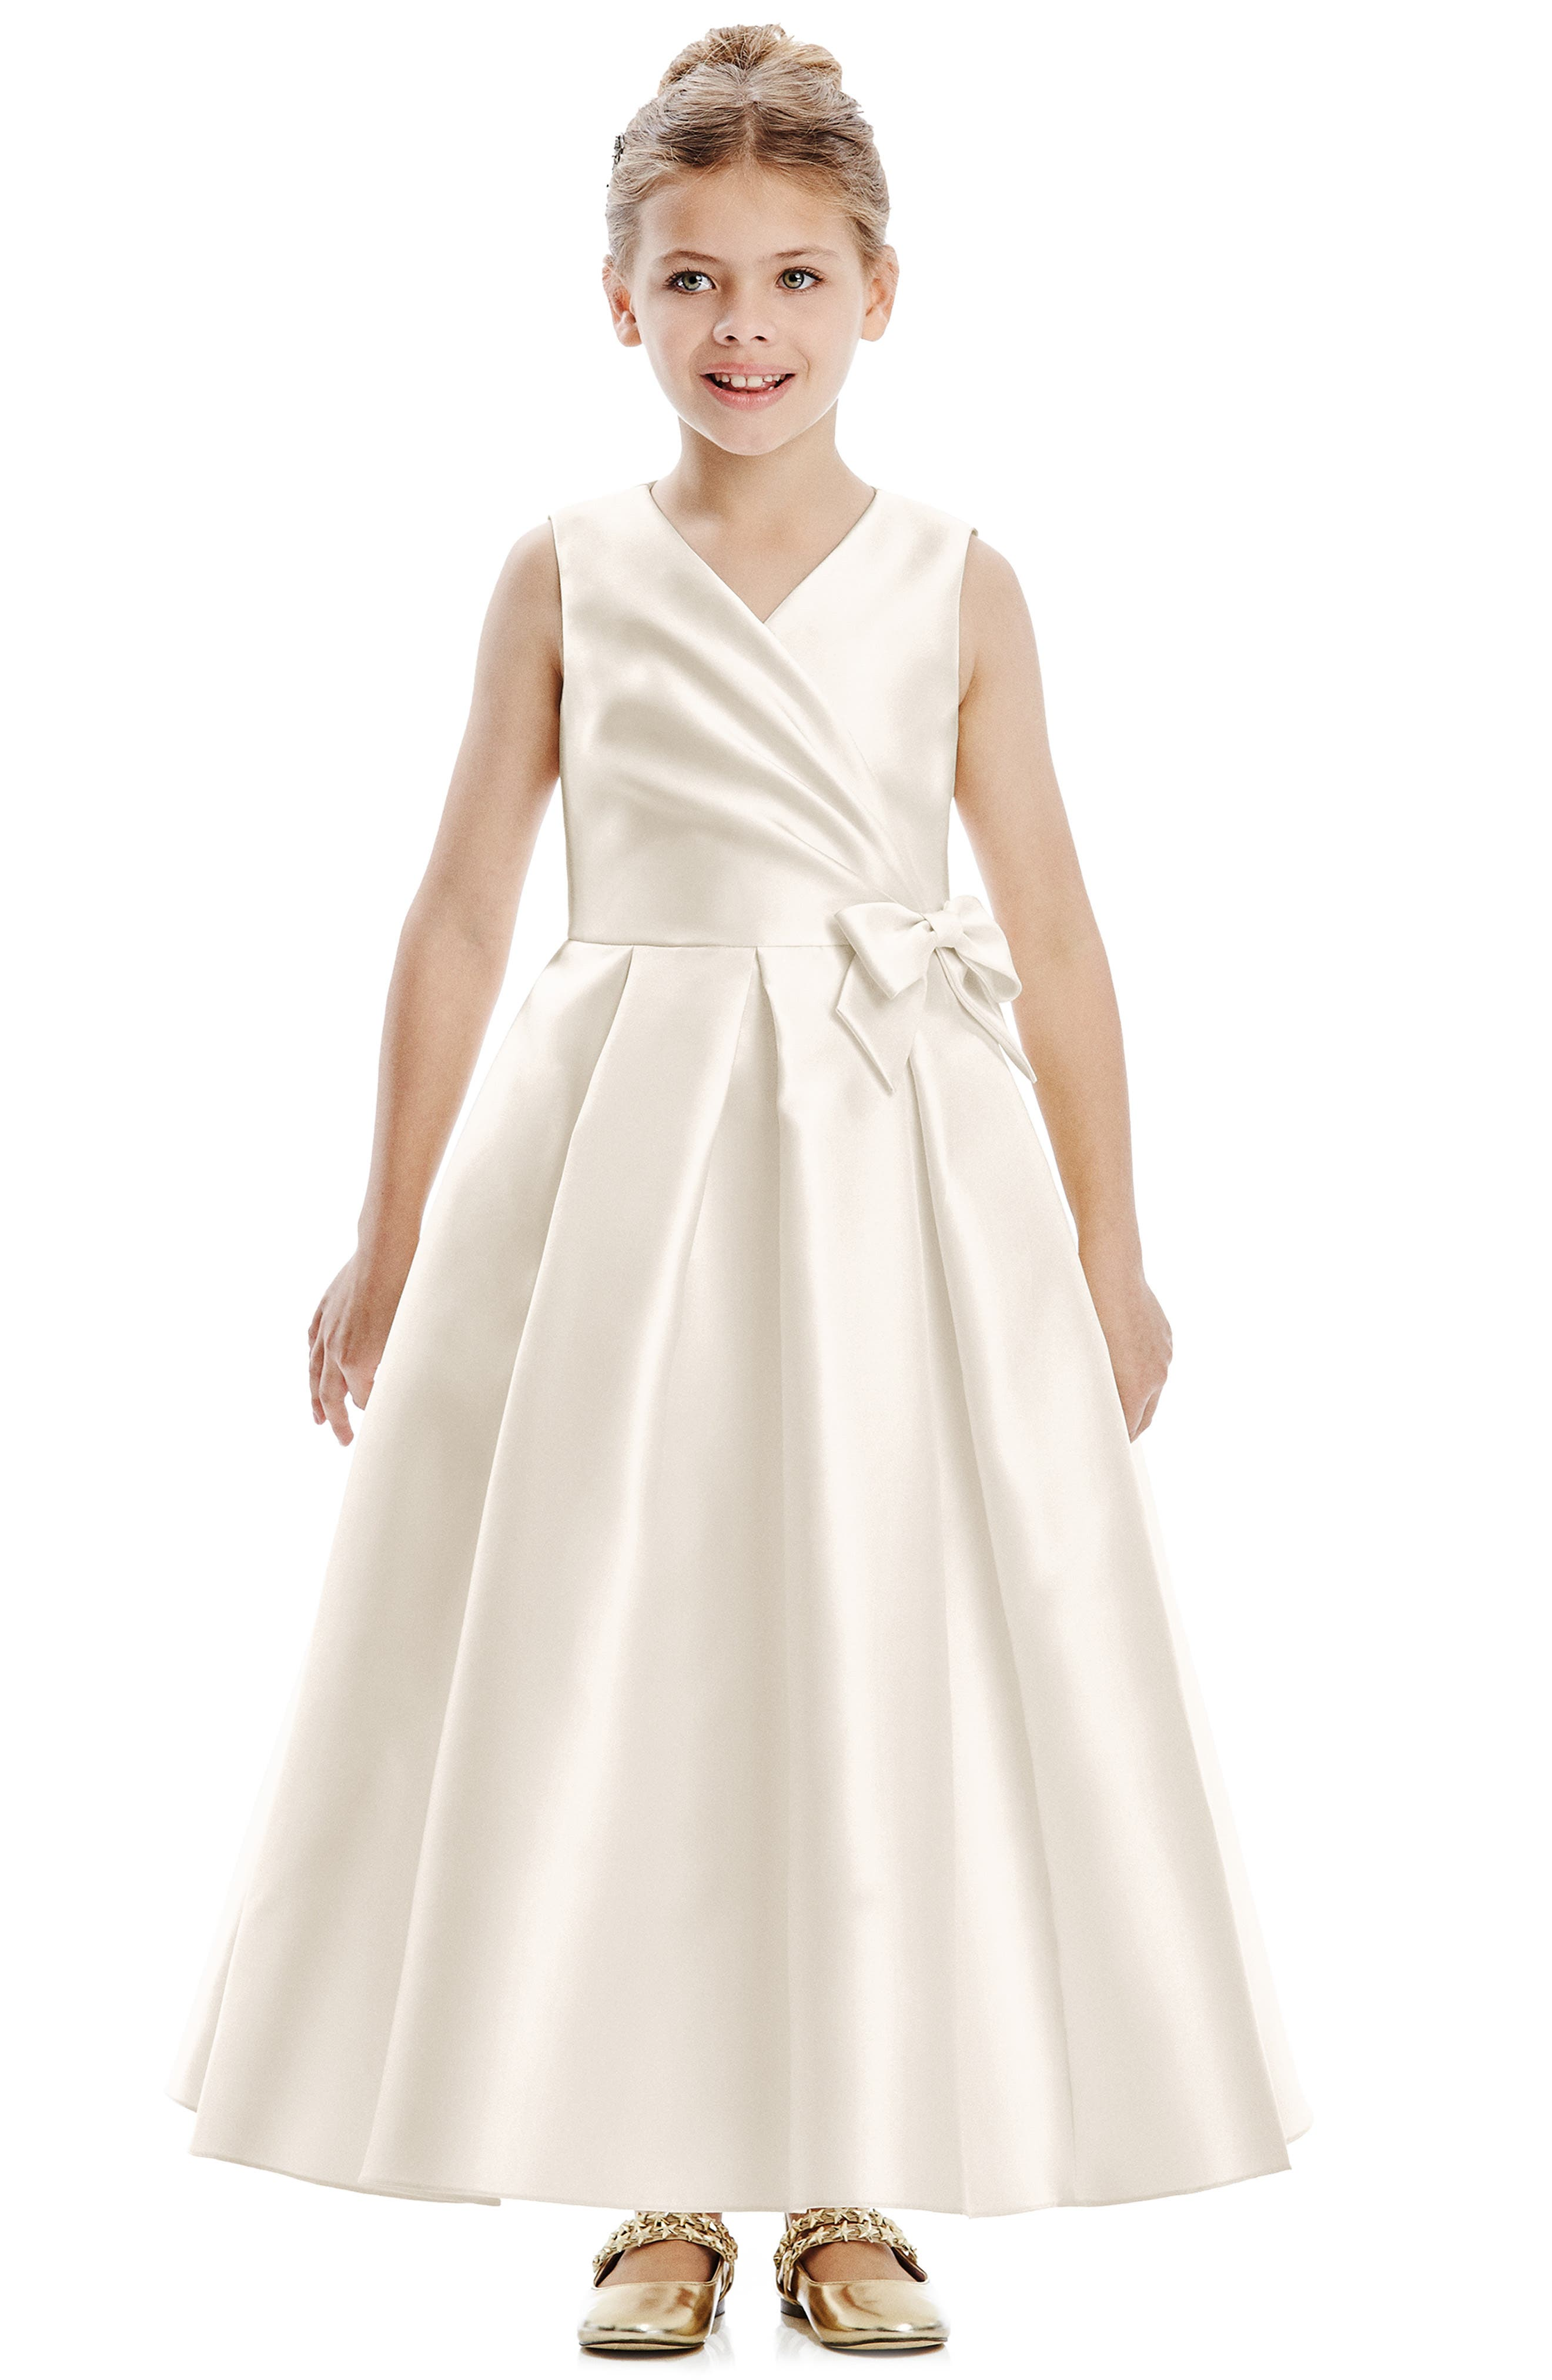 A dainty bow highlights the surplice neckline of an irresistibly sweet flower-girl dress finished with a full, perfectly pleated skirt. Style Name: Dessy Collection Flower Girl Dress (Toddler, Little Girl & Big Girl). Style Number: 6071891. Available in stores.